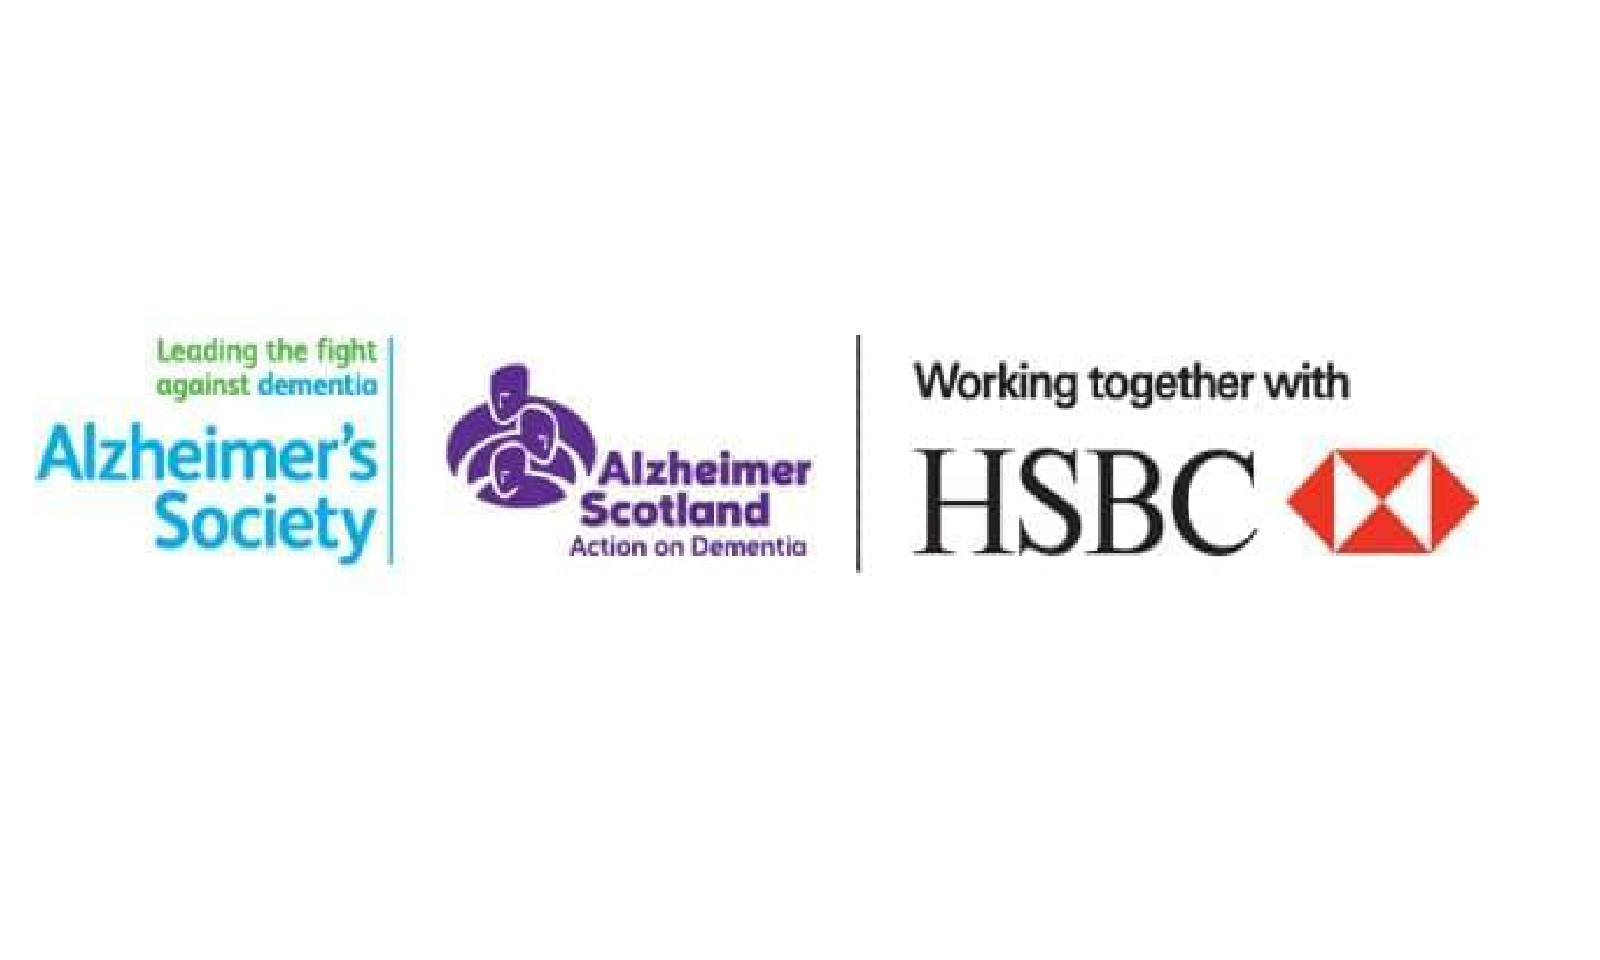 HSBC plans to become a dementia-friendly bank